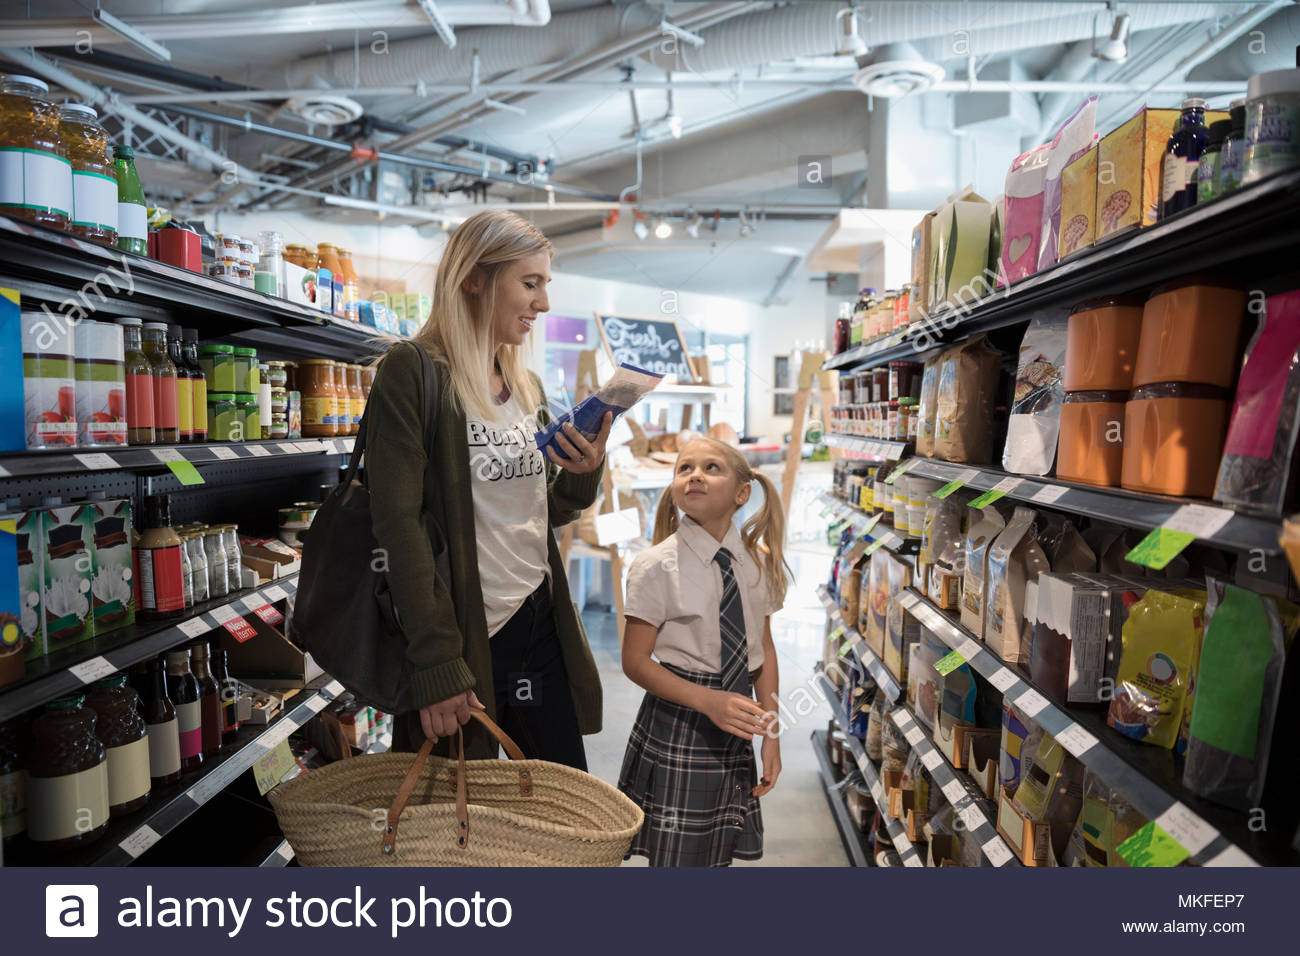 Mother and daughter in school uniform grocery shopping in market aisle - Stock Image